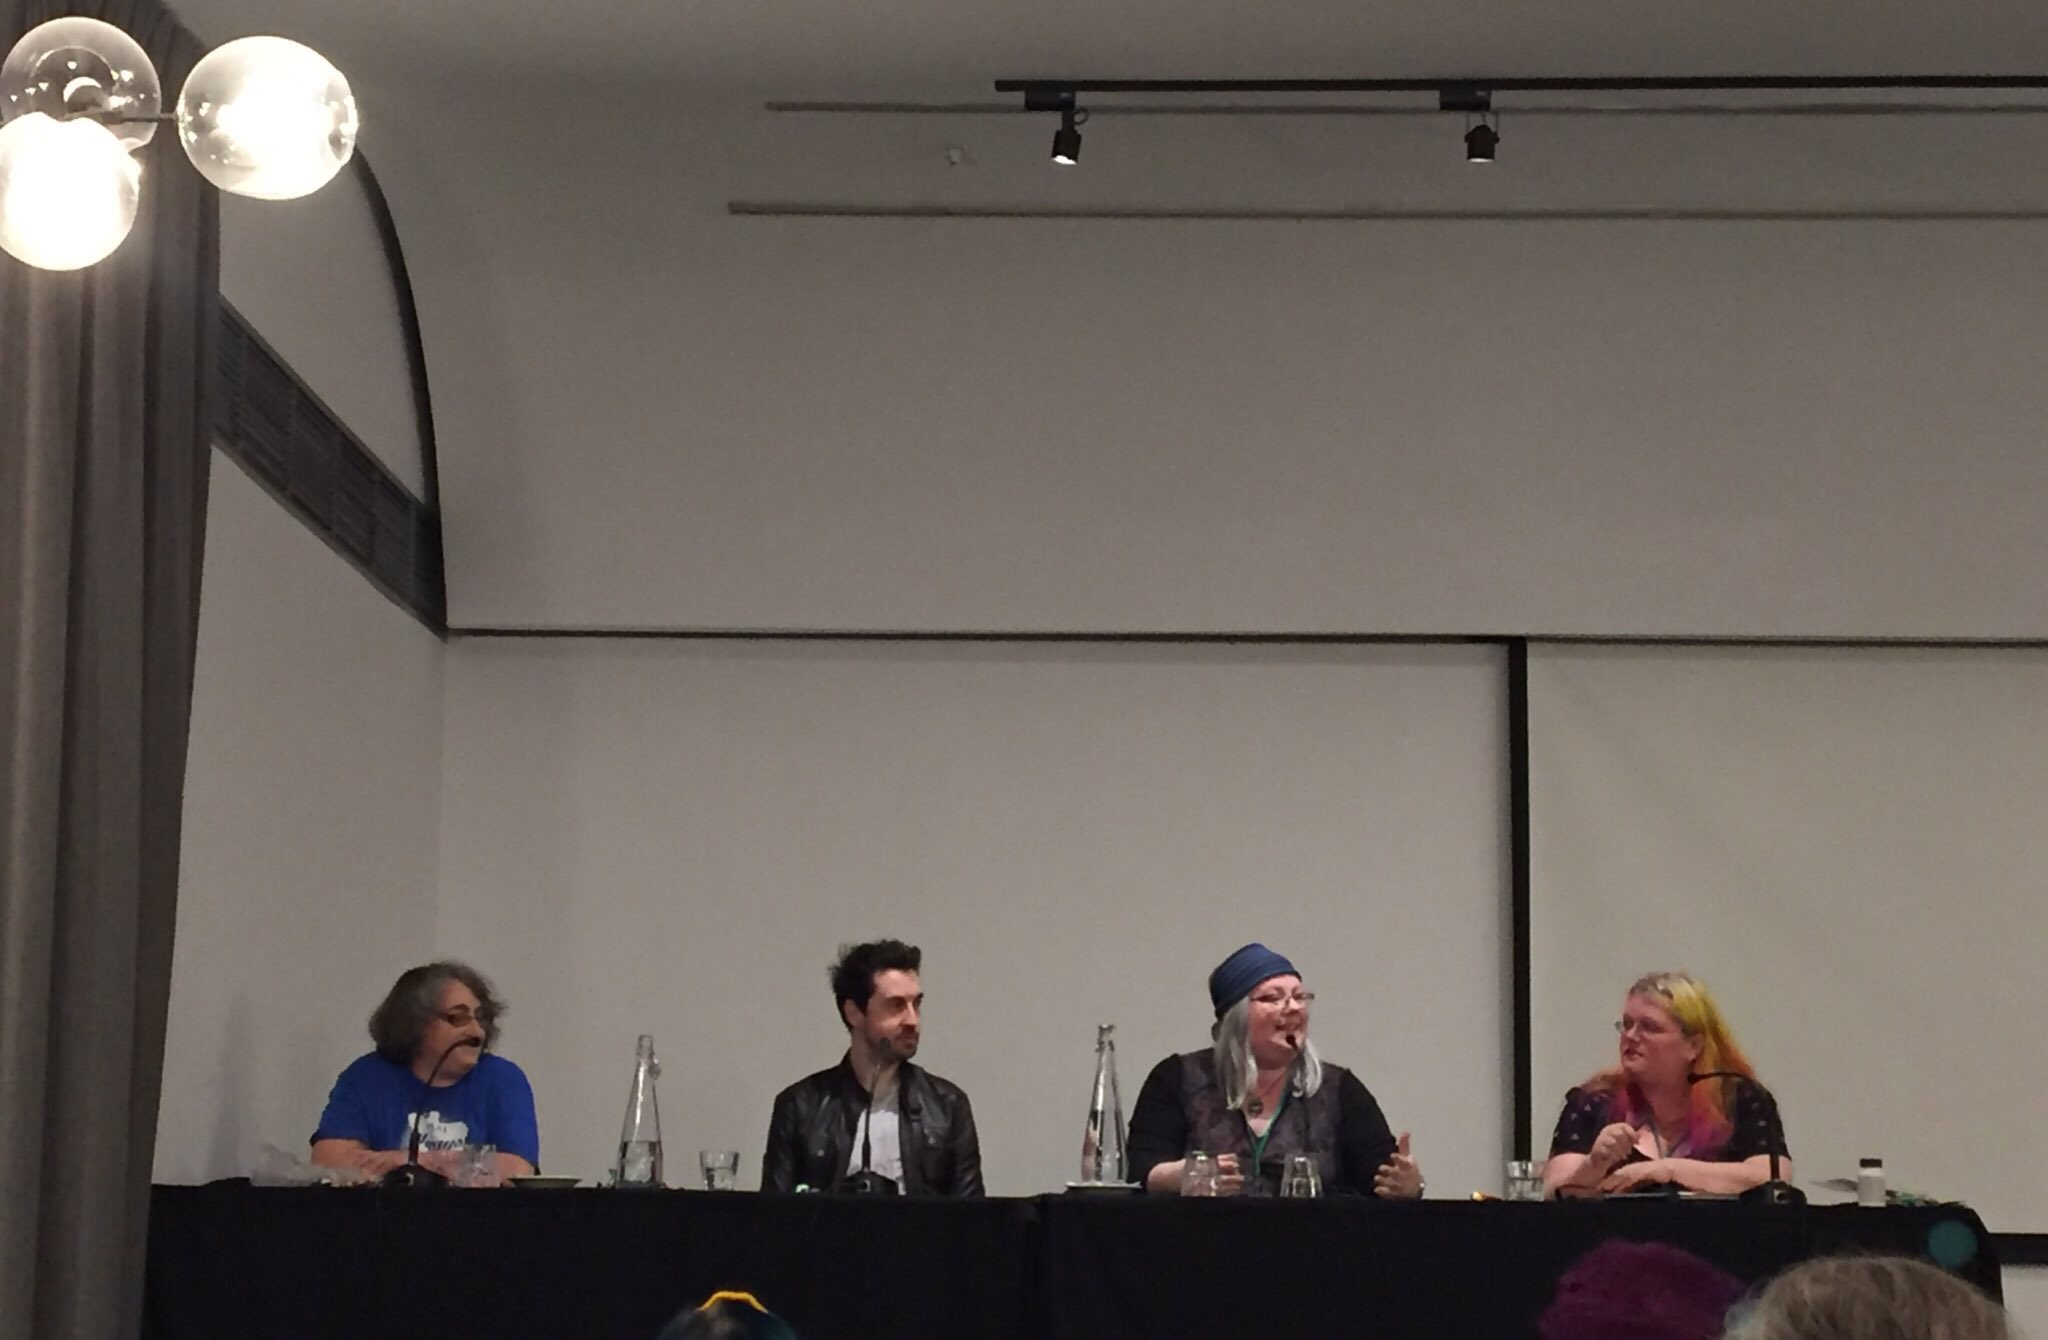 Continuum is underway! First panel of #con13 for me: 'To Be Continued...' with @GillianPolack @nathanmfarrugia @tansyrr and @seananmcguire https://t.co/LhNcqWXRF8